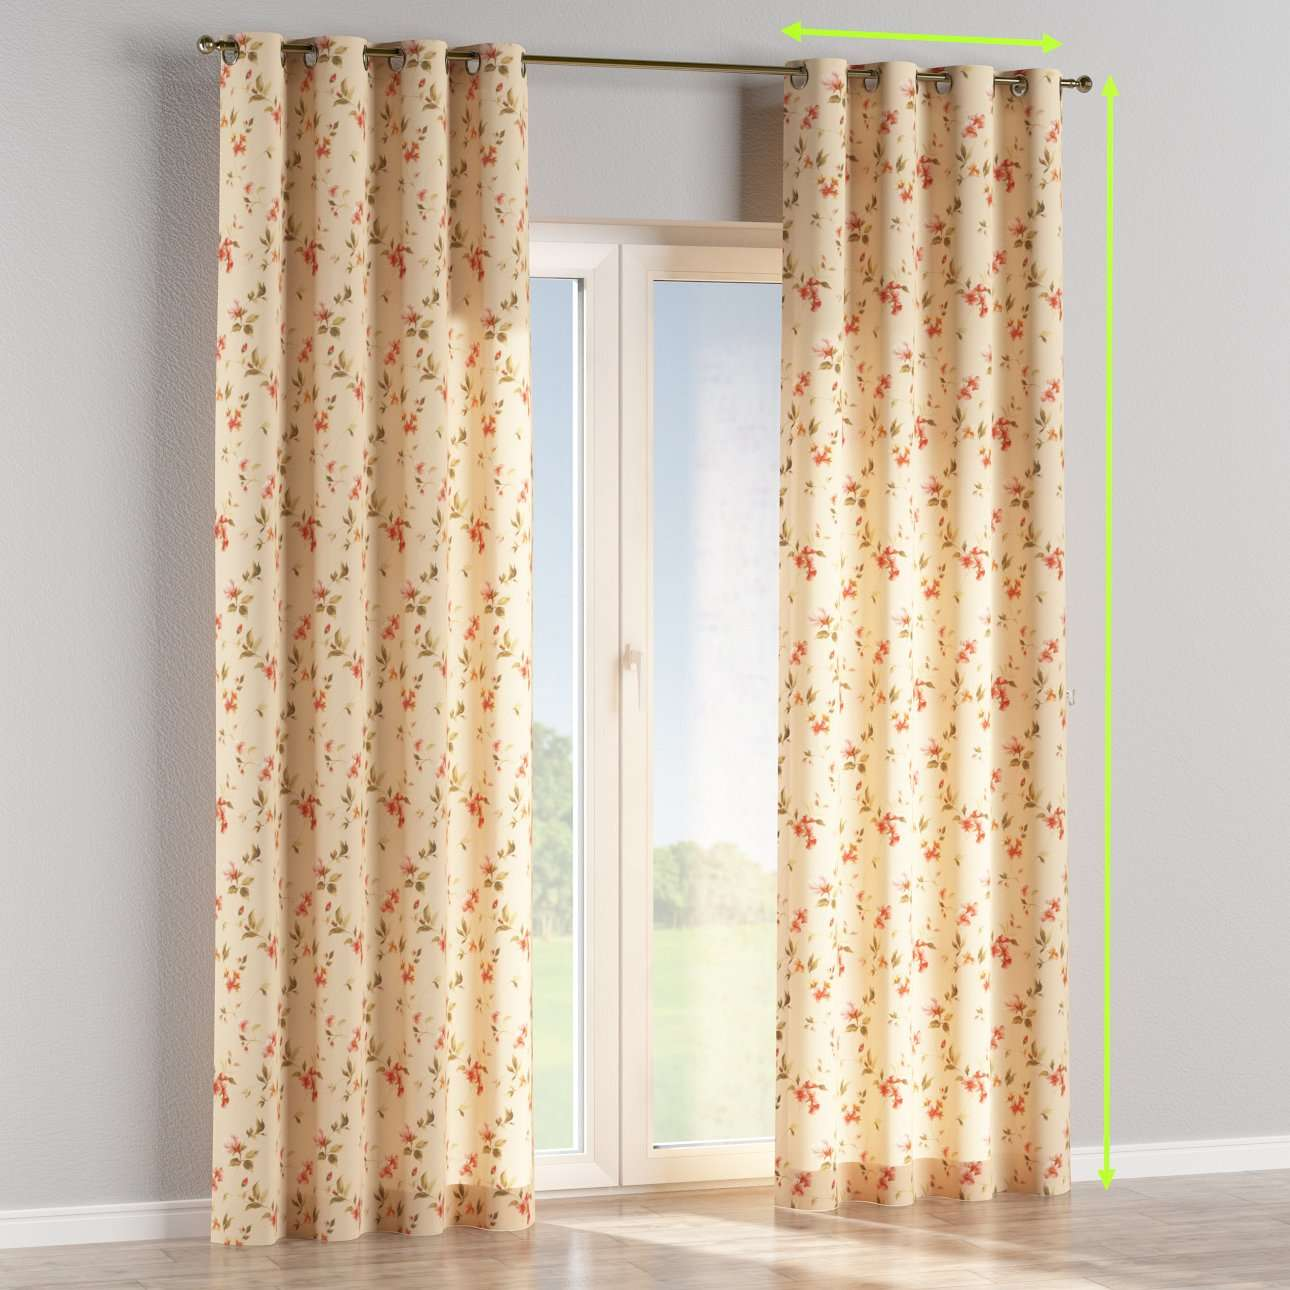 Eyelet lined curtains in collection Londres, fabric: 124-05